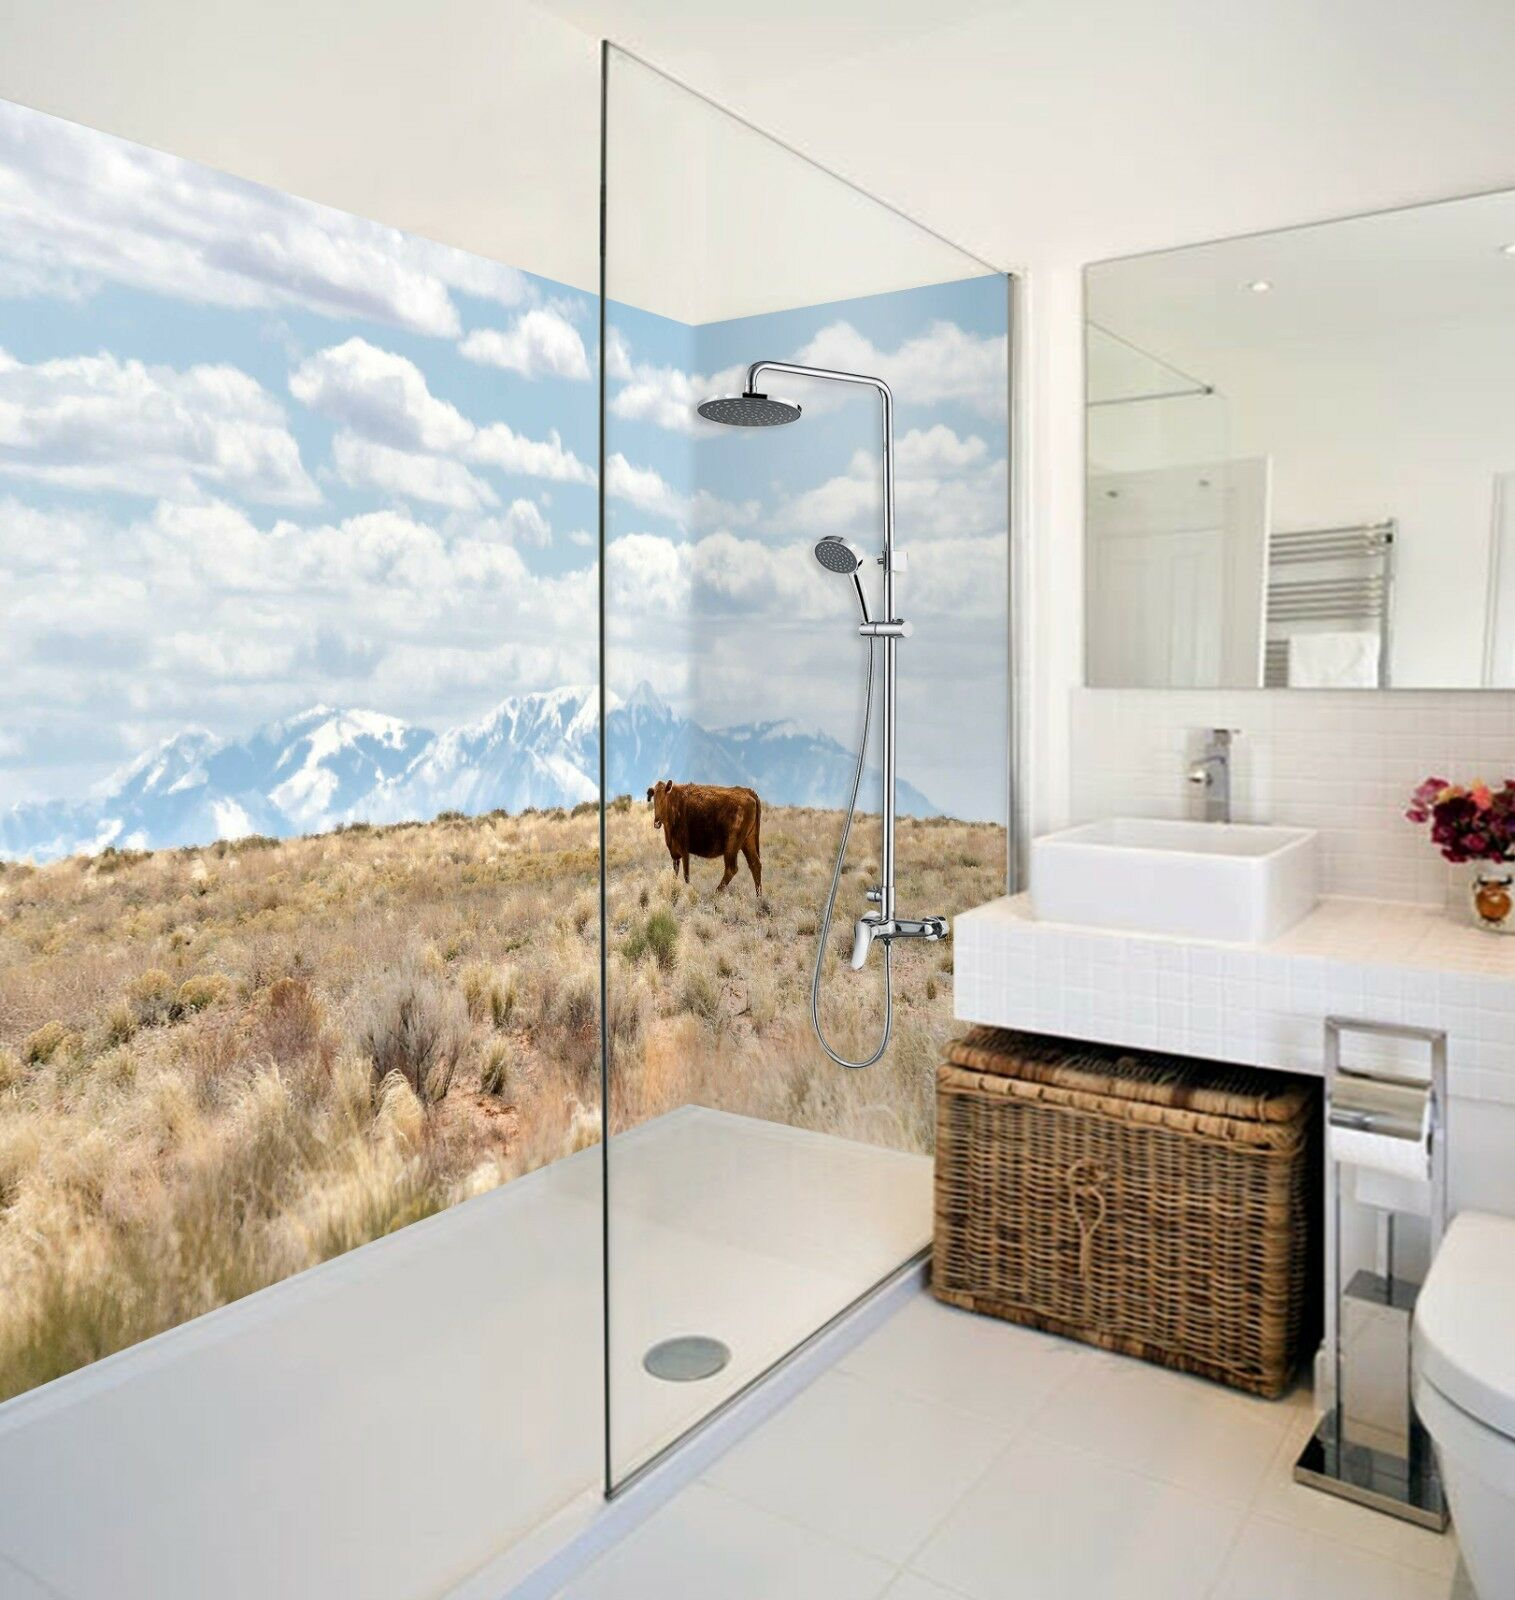 3D Grassland Cattle 435 WallPaper Bathroom Print Decal Wall Deco AJ WALLPAPER AU